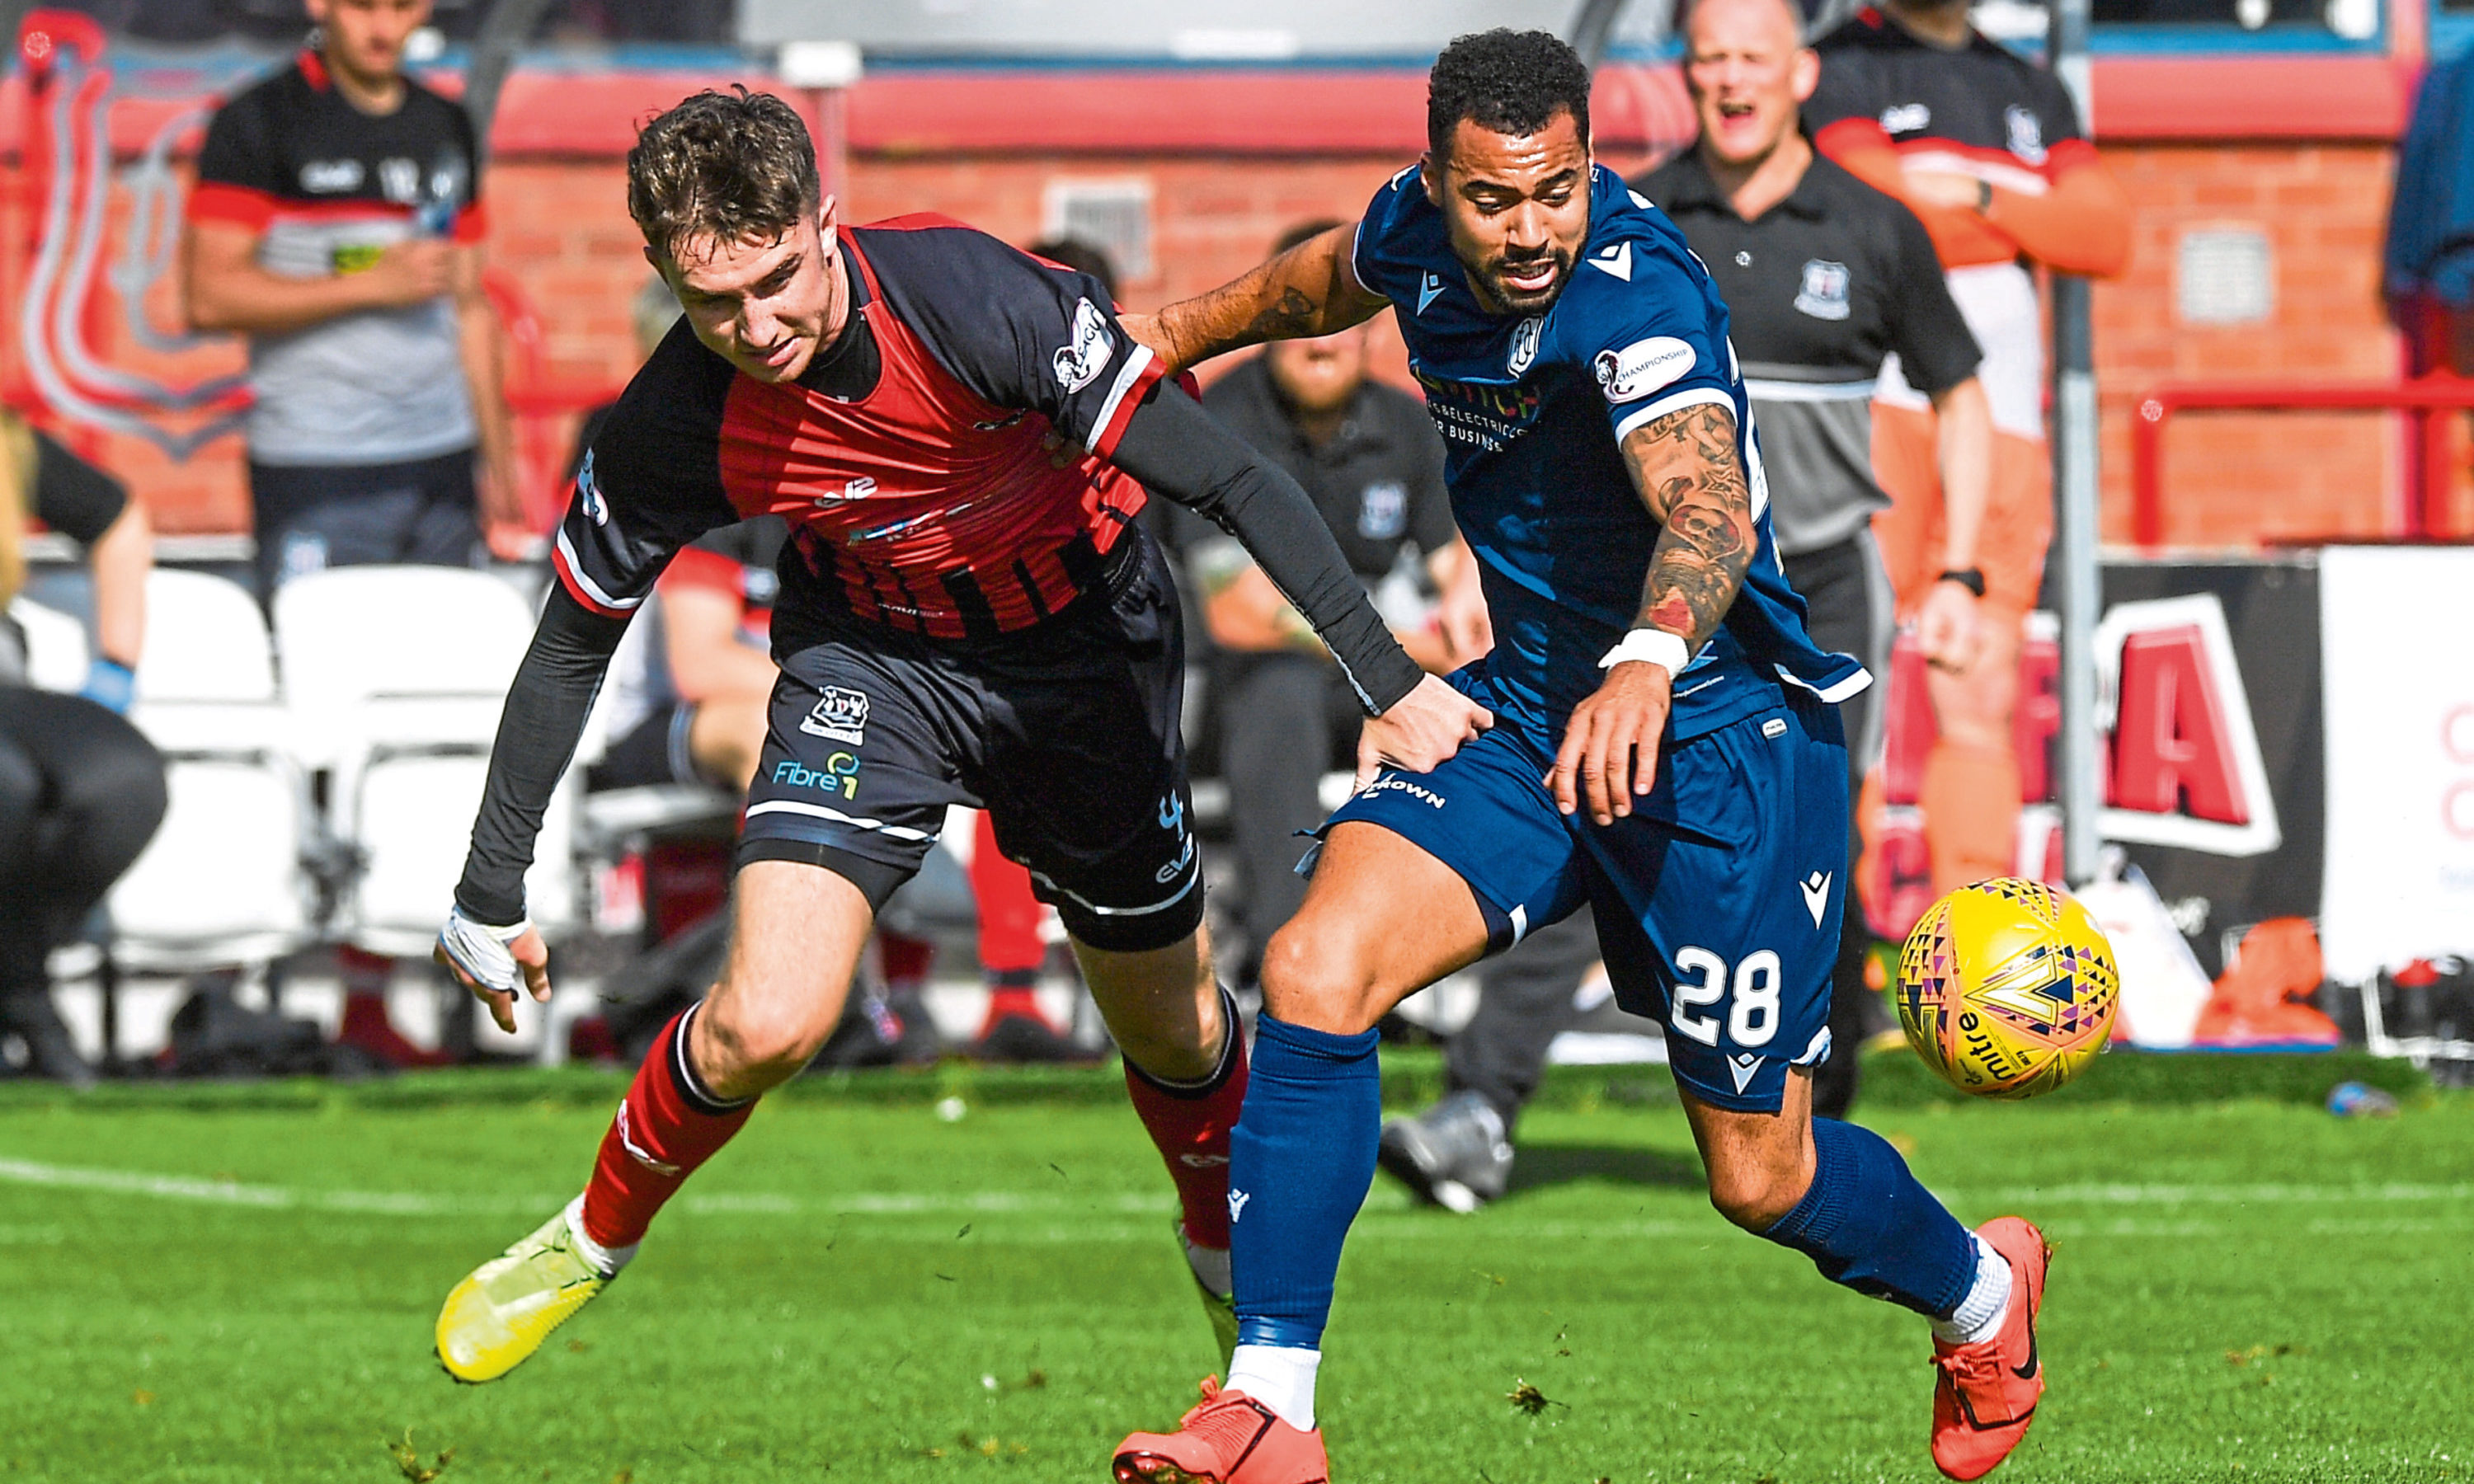 Kane Hemmings and Andrew McDonald of Elgin battle for the ball.